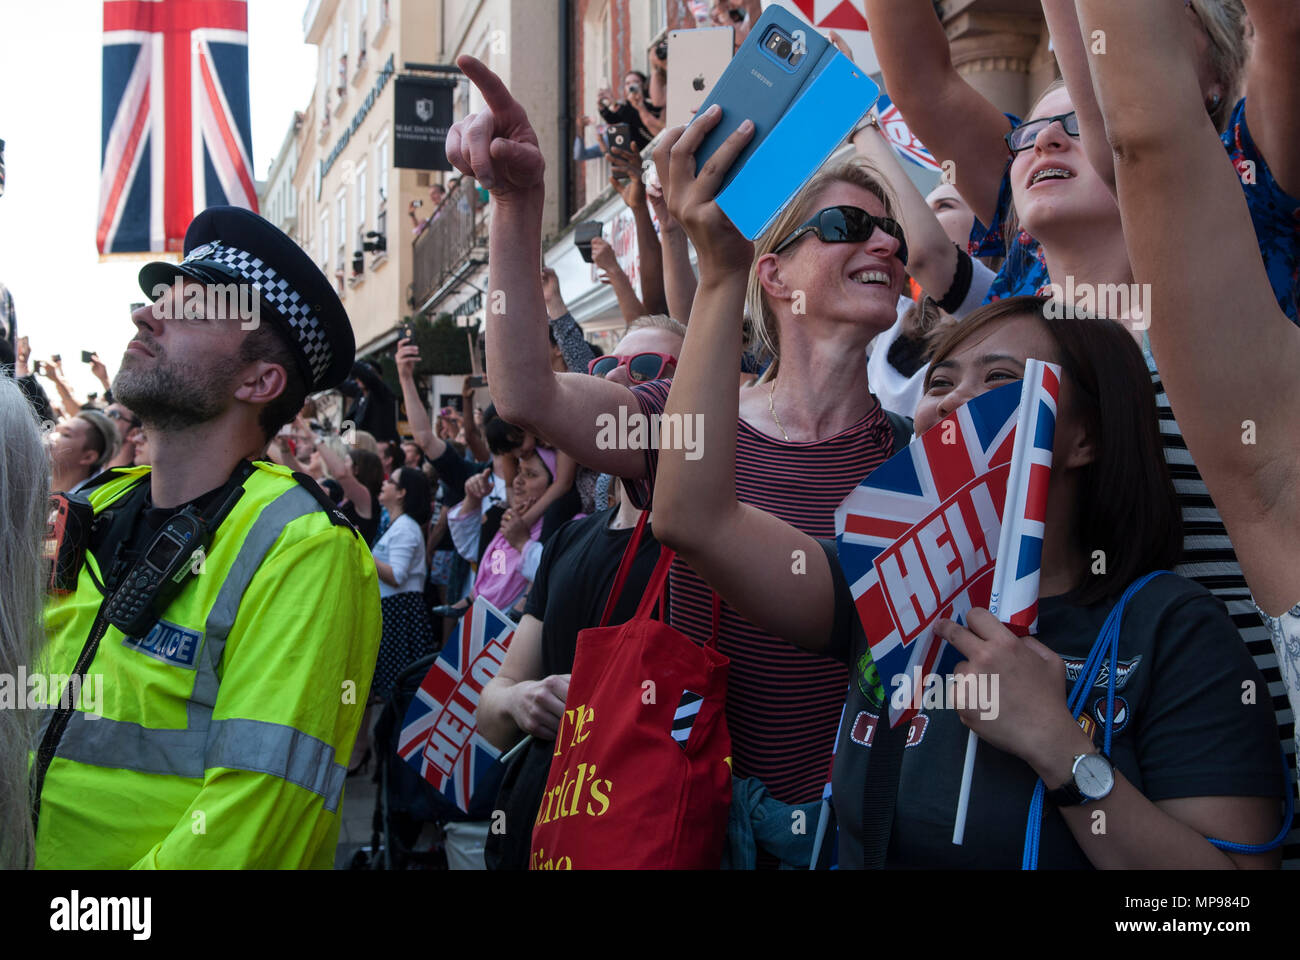 People in crowd with mobile devises phones iphones i phone tourists watching Royal Wedding Prince Harry Meghan Markle  procession  Windsor Uk 2018 HOMER SYKES Stock Photo